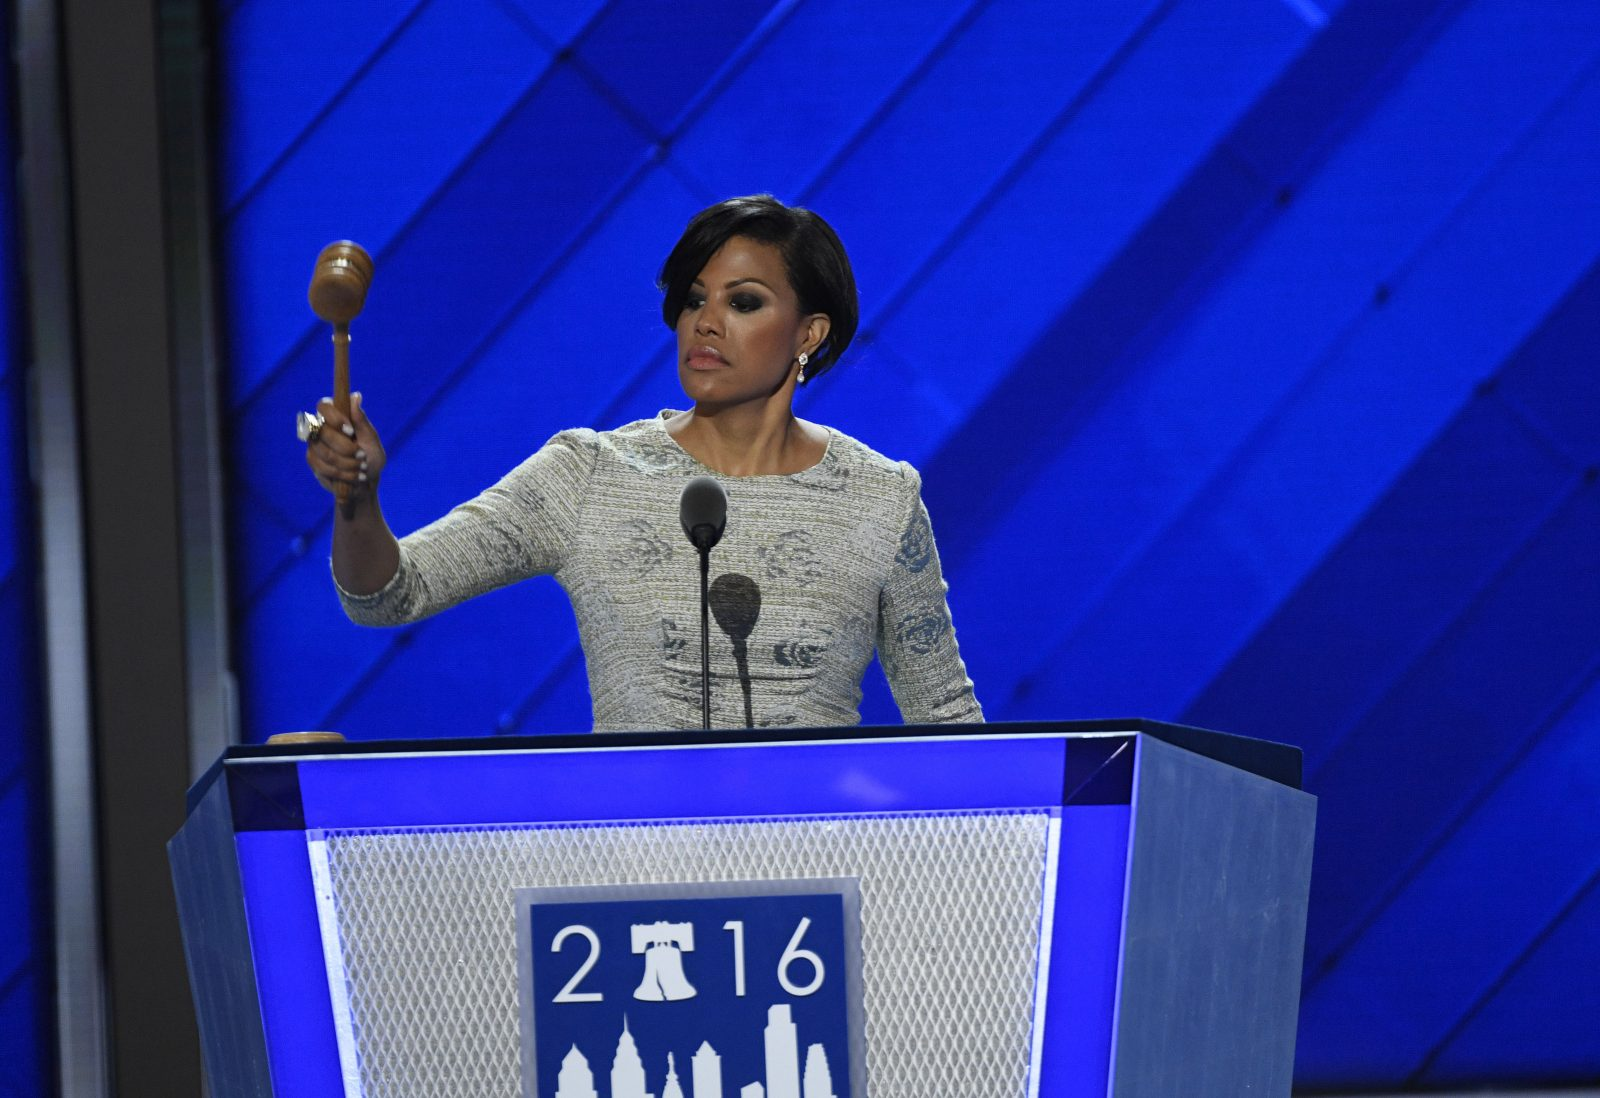 Baltimore Mayor Stephanie Rawlings-Blake swings the gavel during the Democratic National Convention in Philadelphia. (Bloomberg photo)